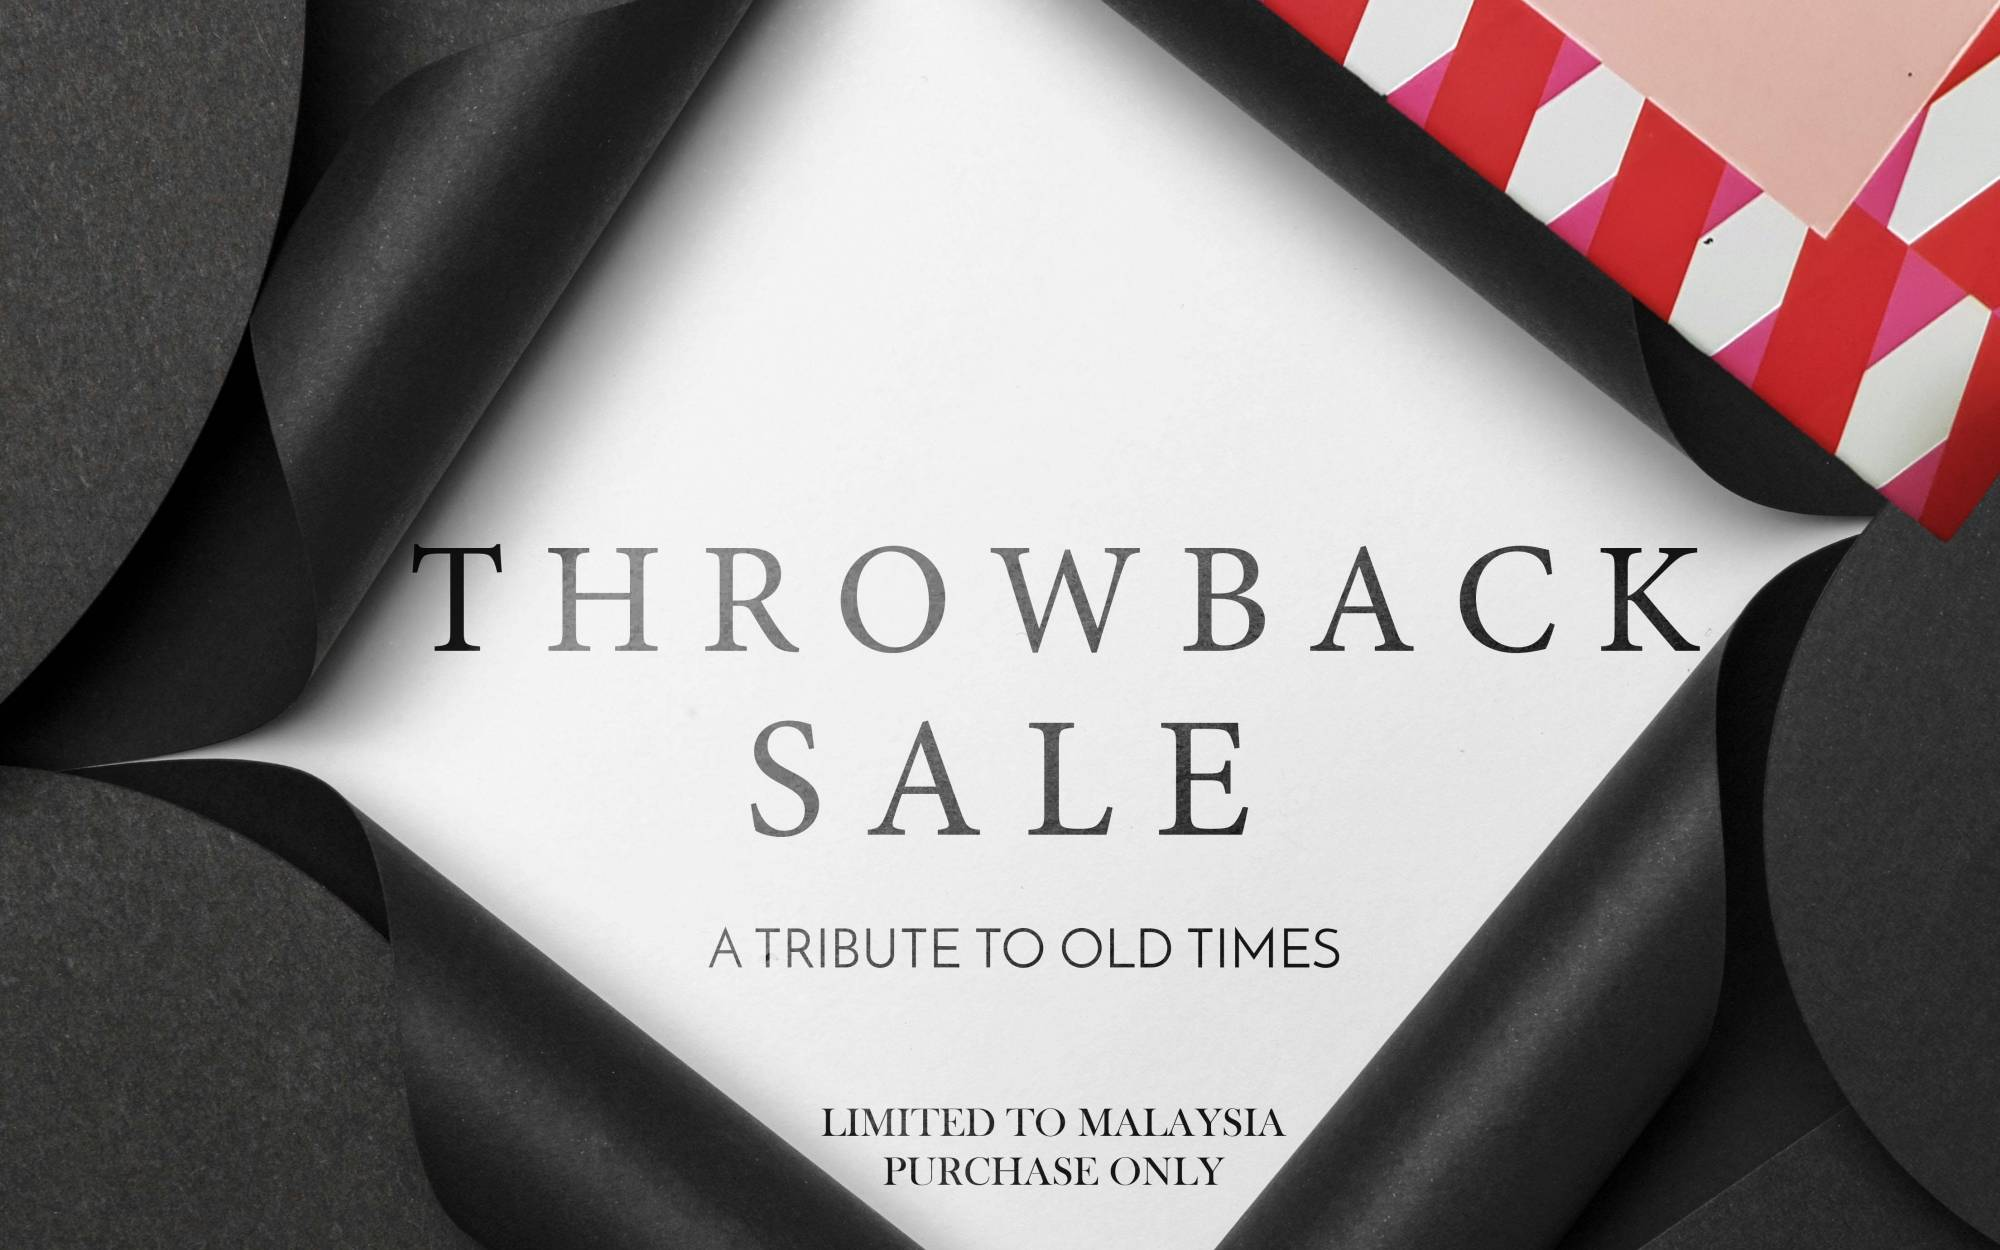 Throwback sale